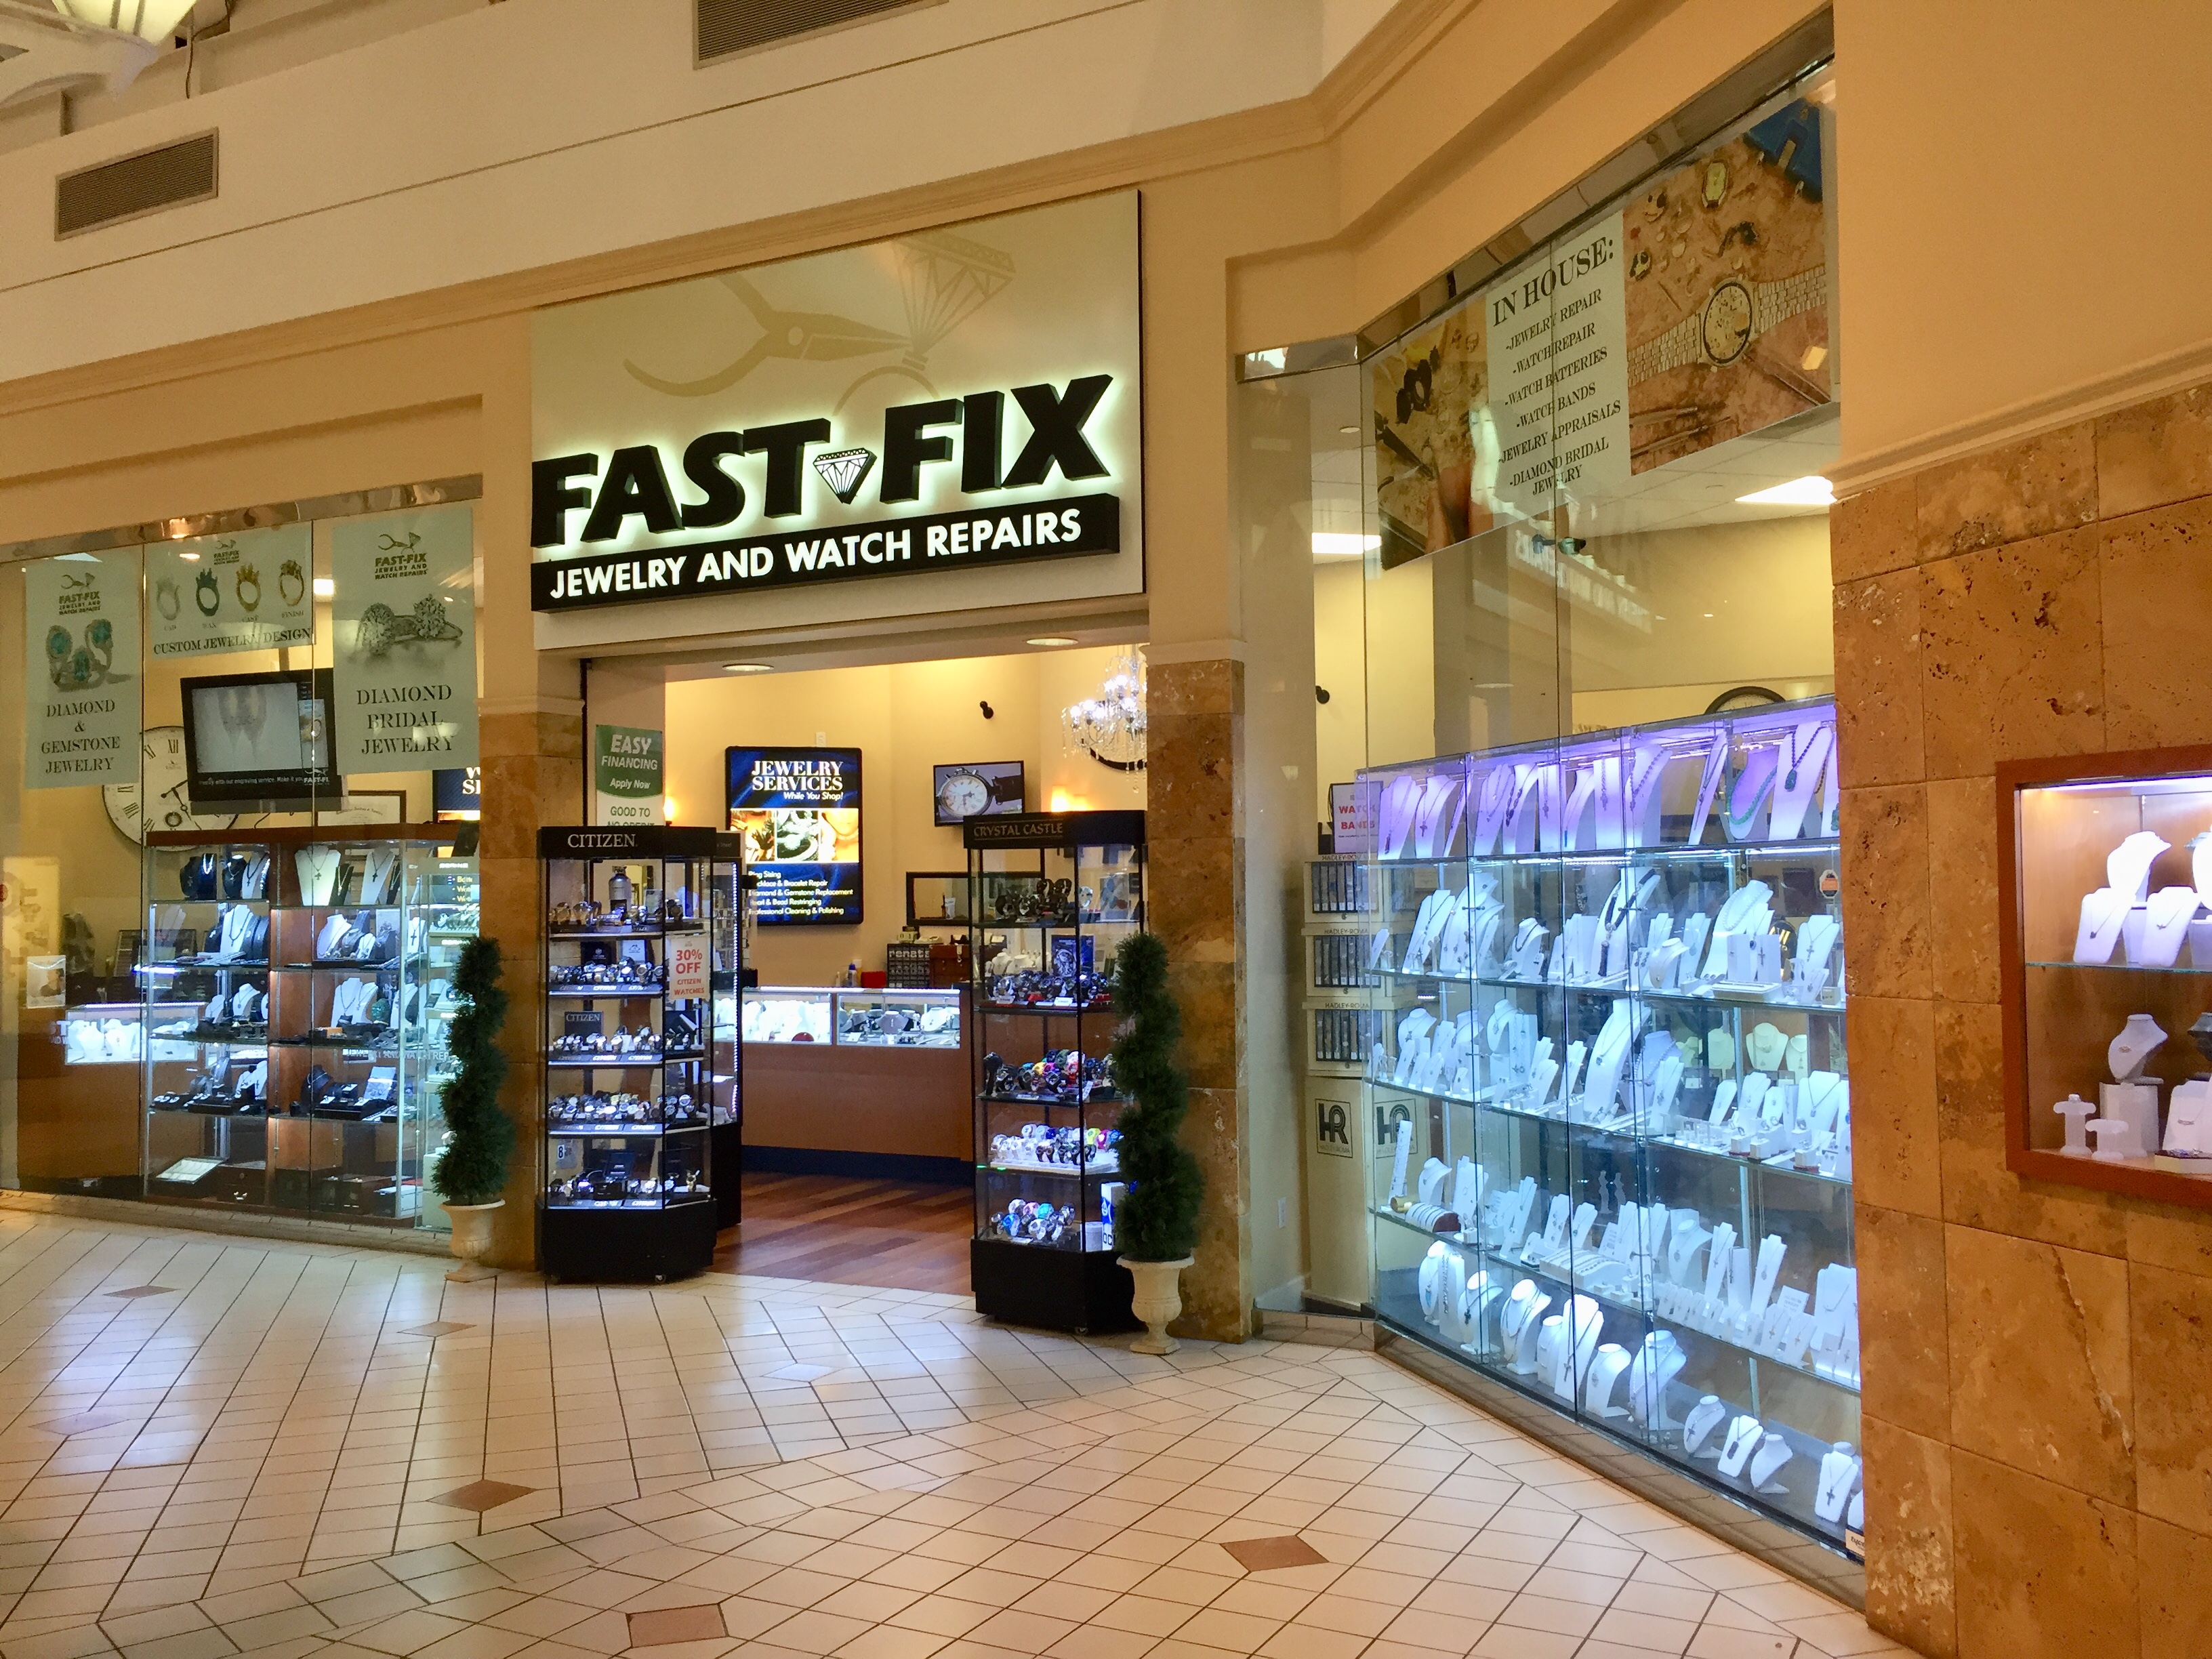 Interior of a Fast-Fix franchise